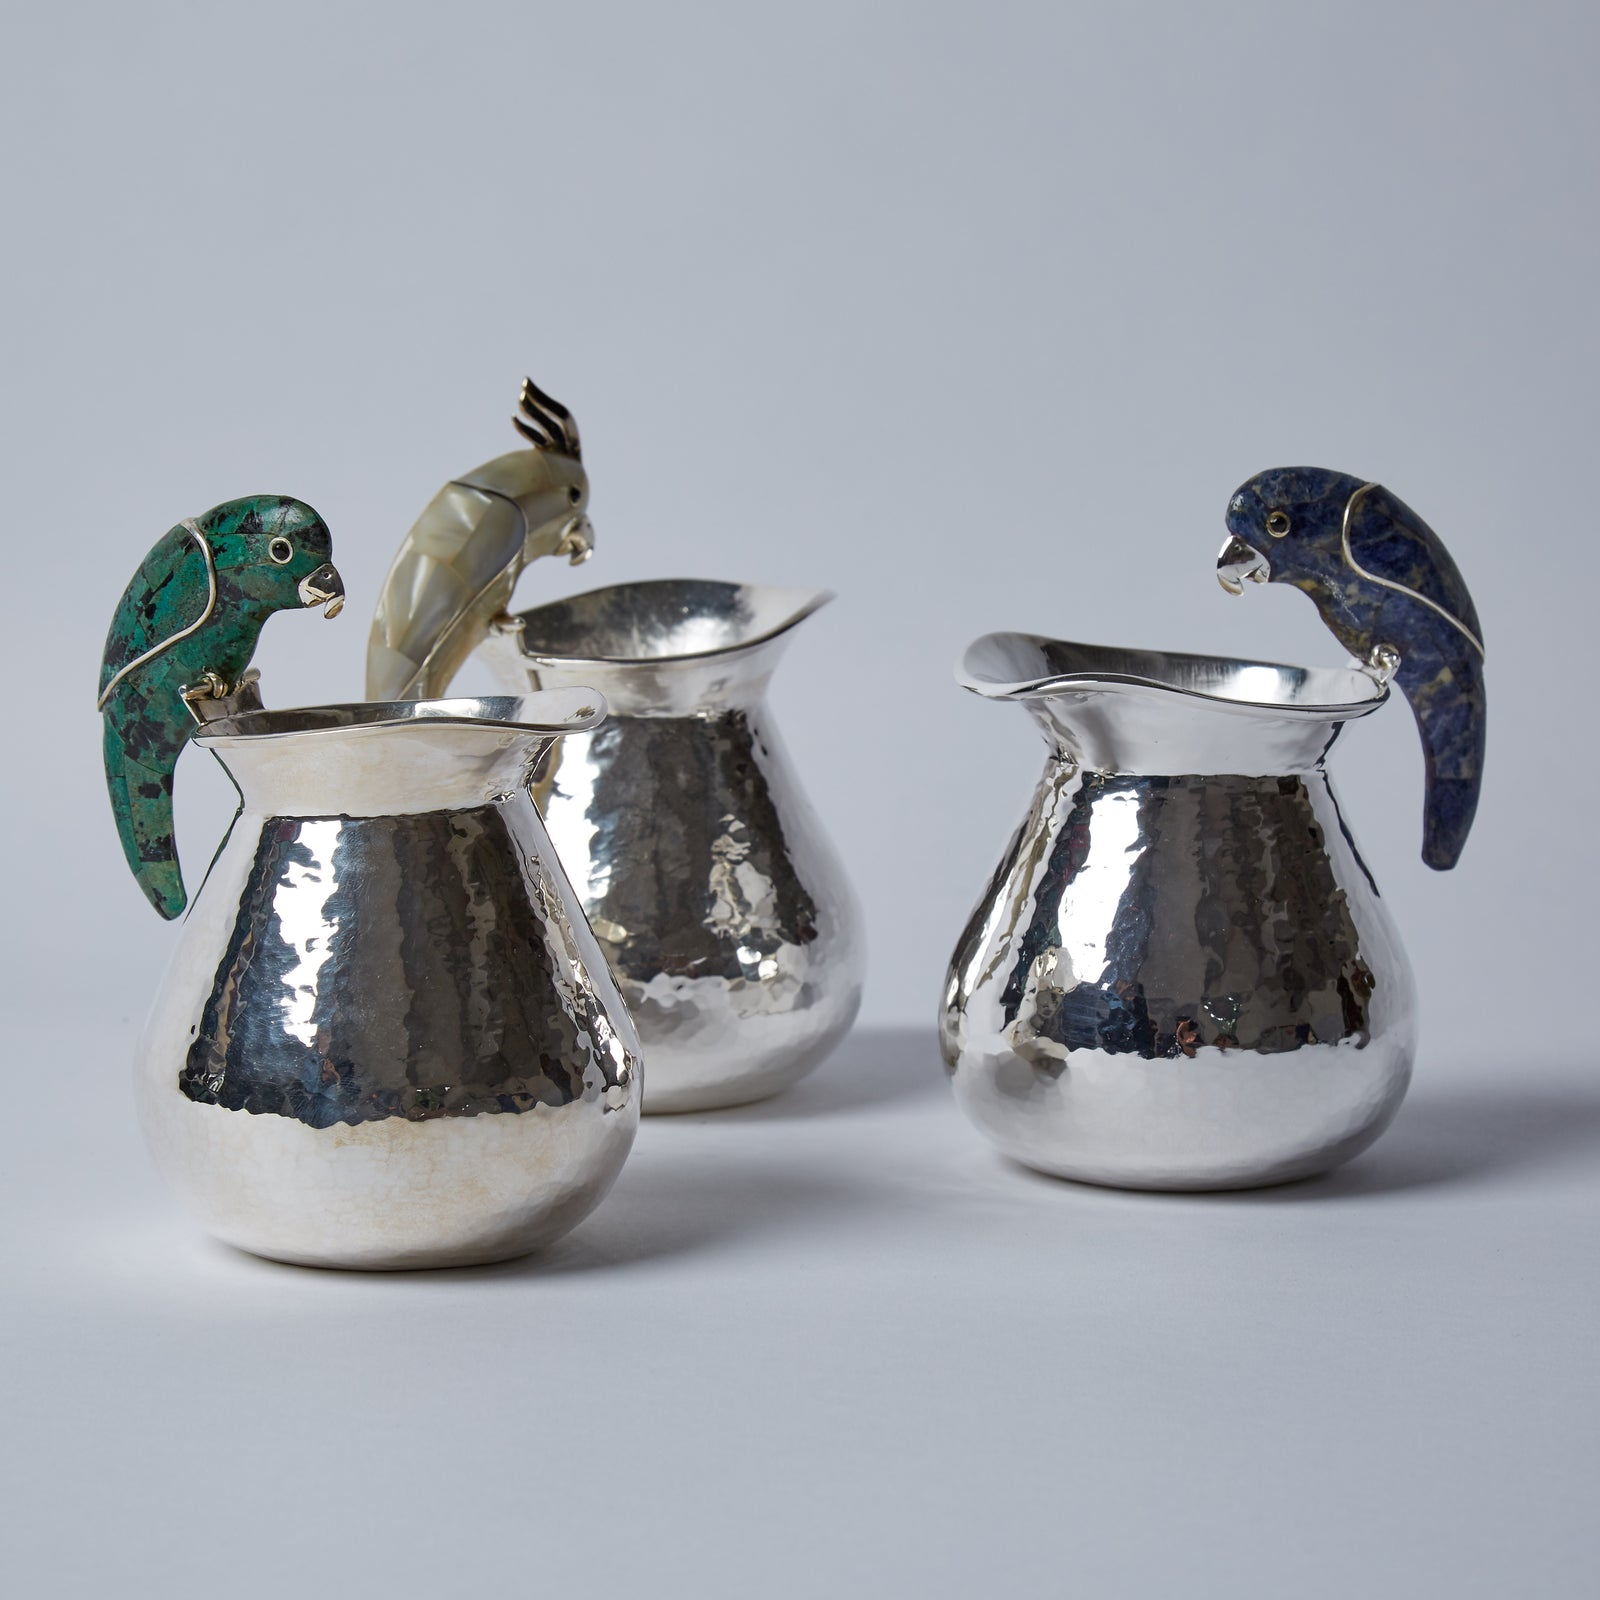 A collection of cremera jugs, adorned with a flock of mosaicked birds